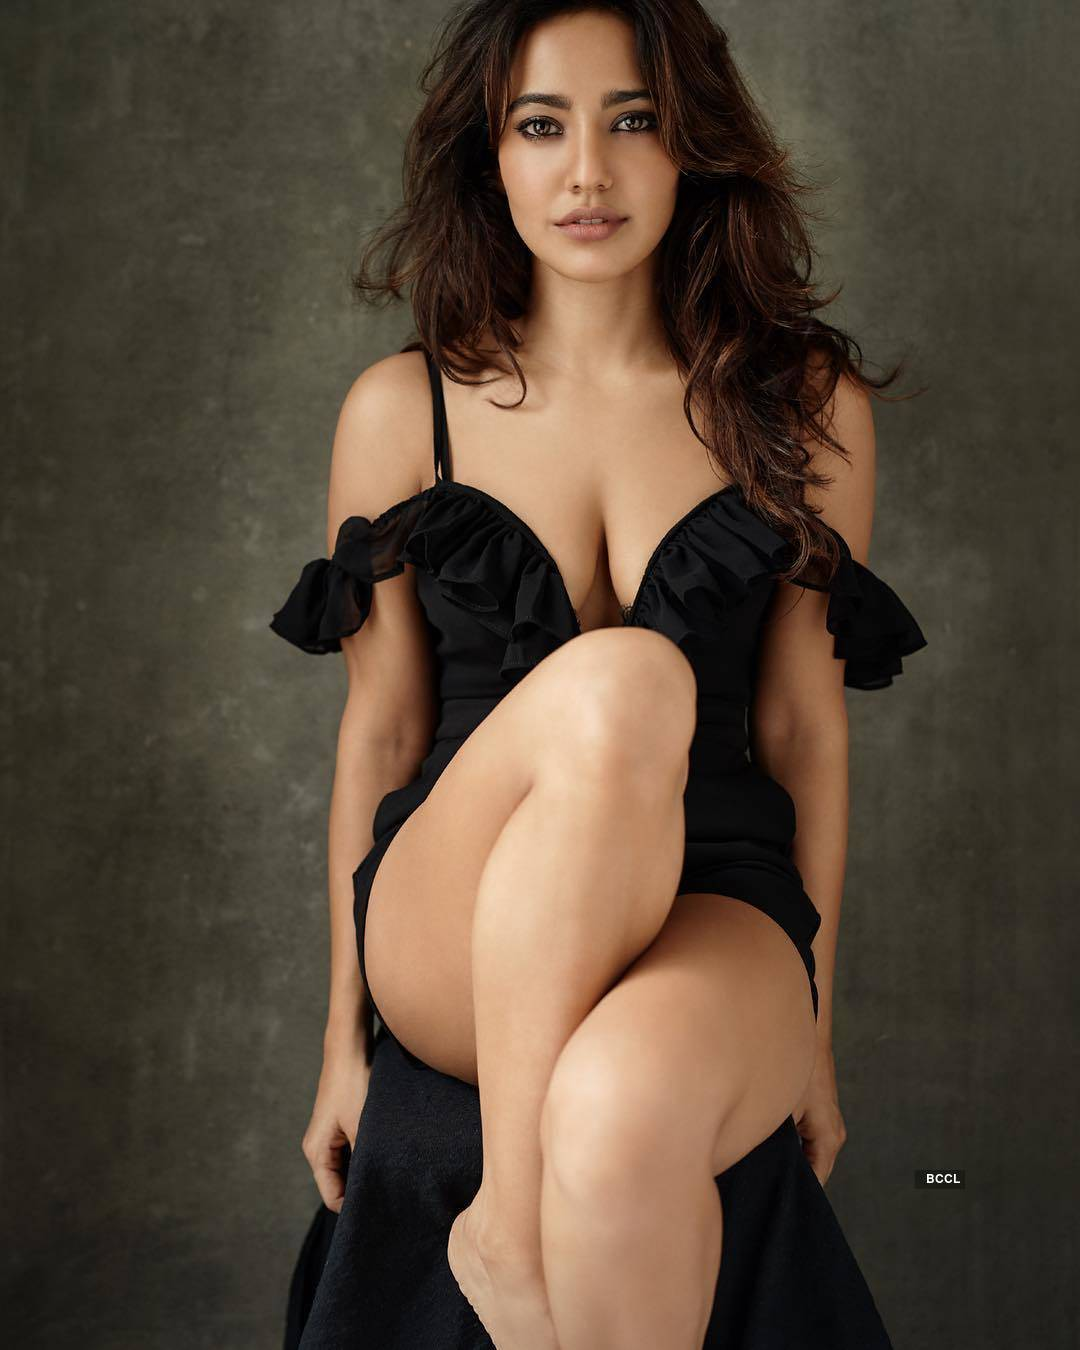 Neha Sharma Photos: 35 Hot & Sexy pictures of one of the most charming  actress in Bollywood